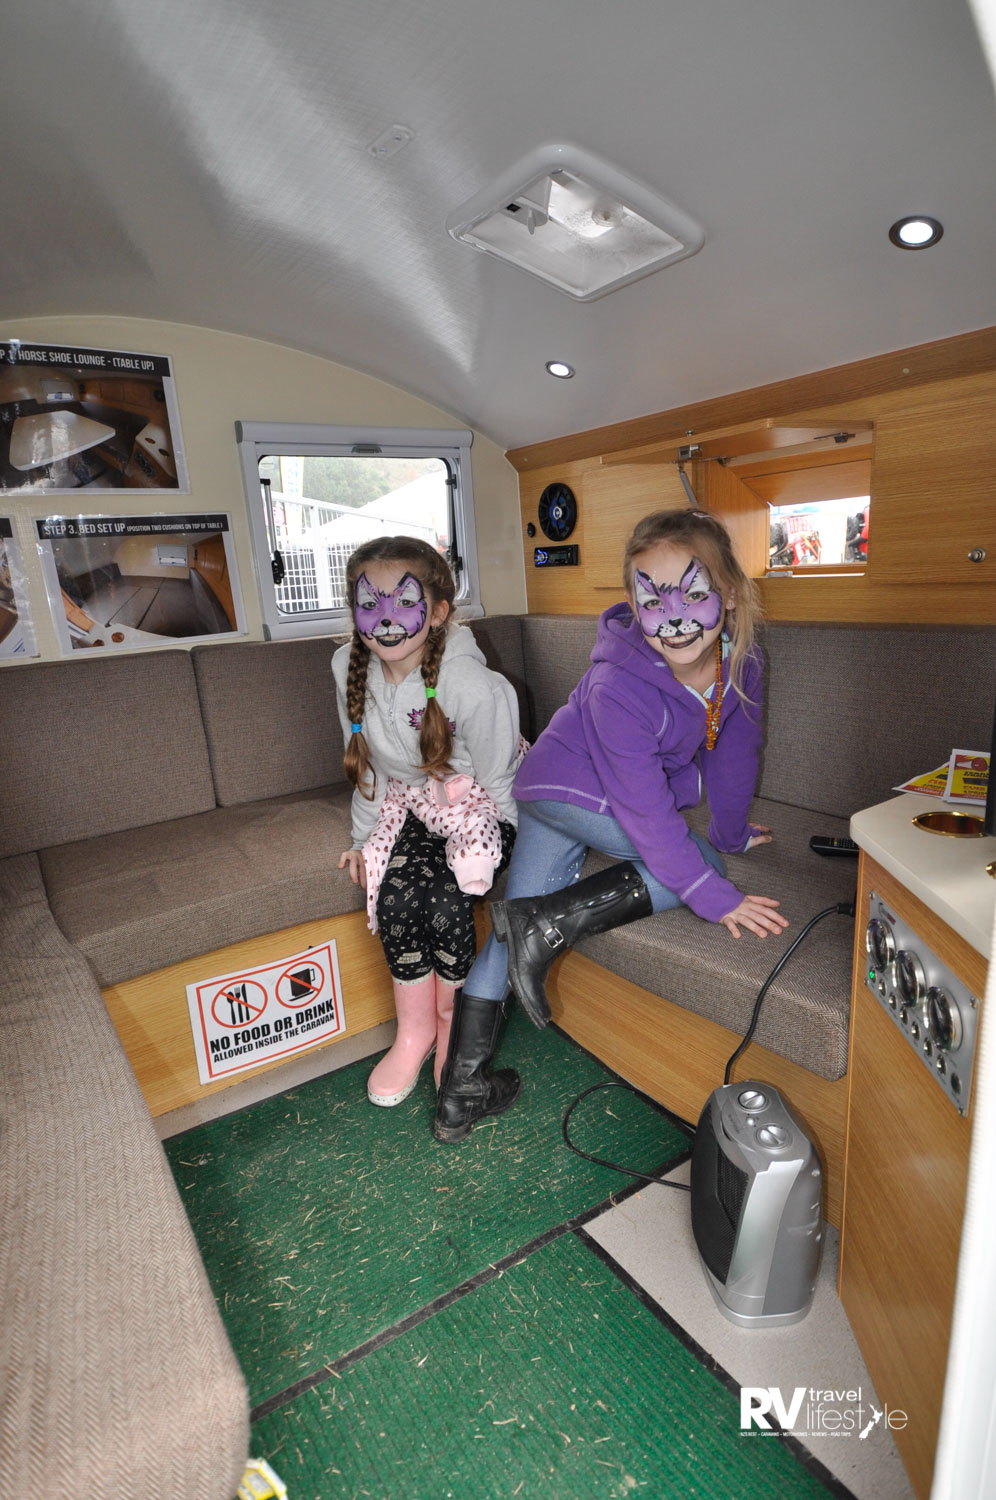 These little cats had plenty of fun playing in the teardrop camper at Fieldays